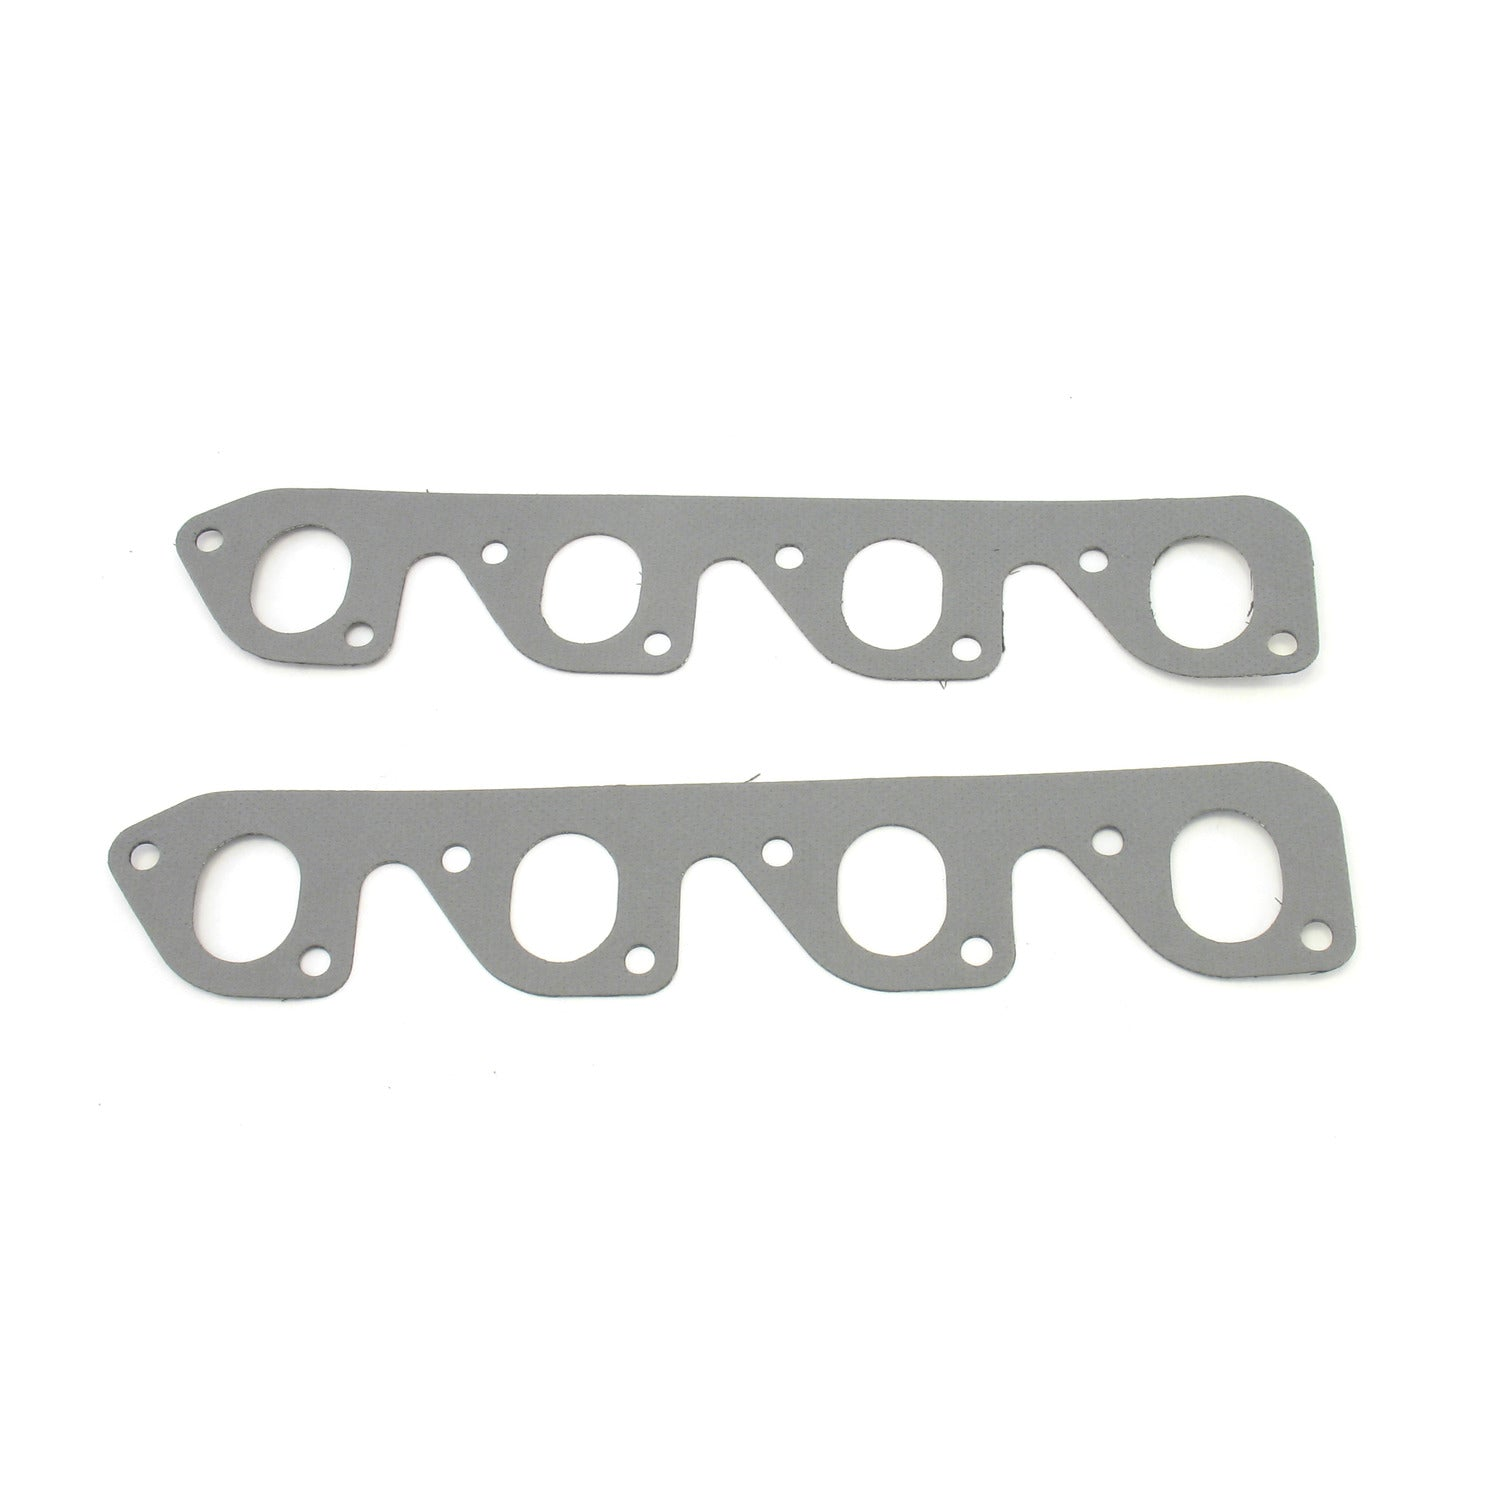 Patriot Exhaust H7596 Header Gasket Ford 351C (2 Barrel Heads) 351-400M Oval Port, pair